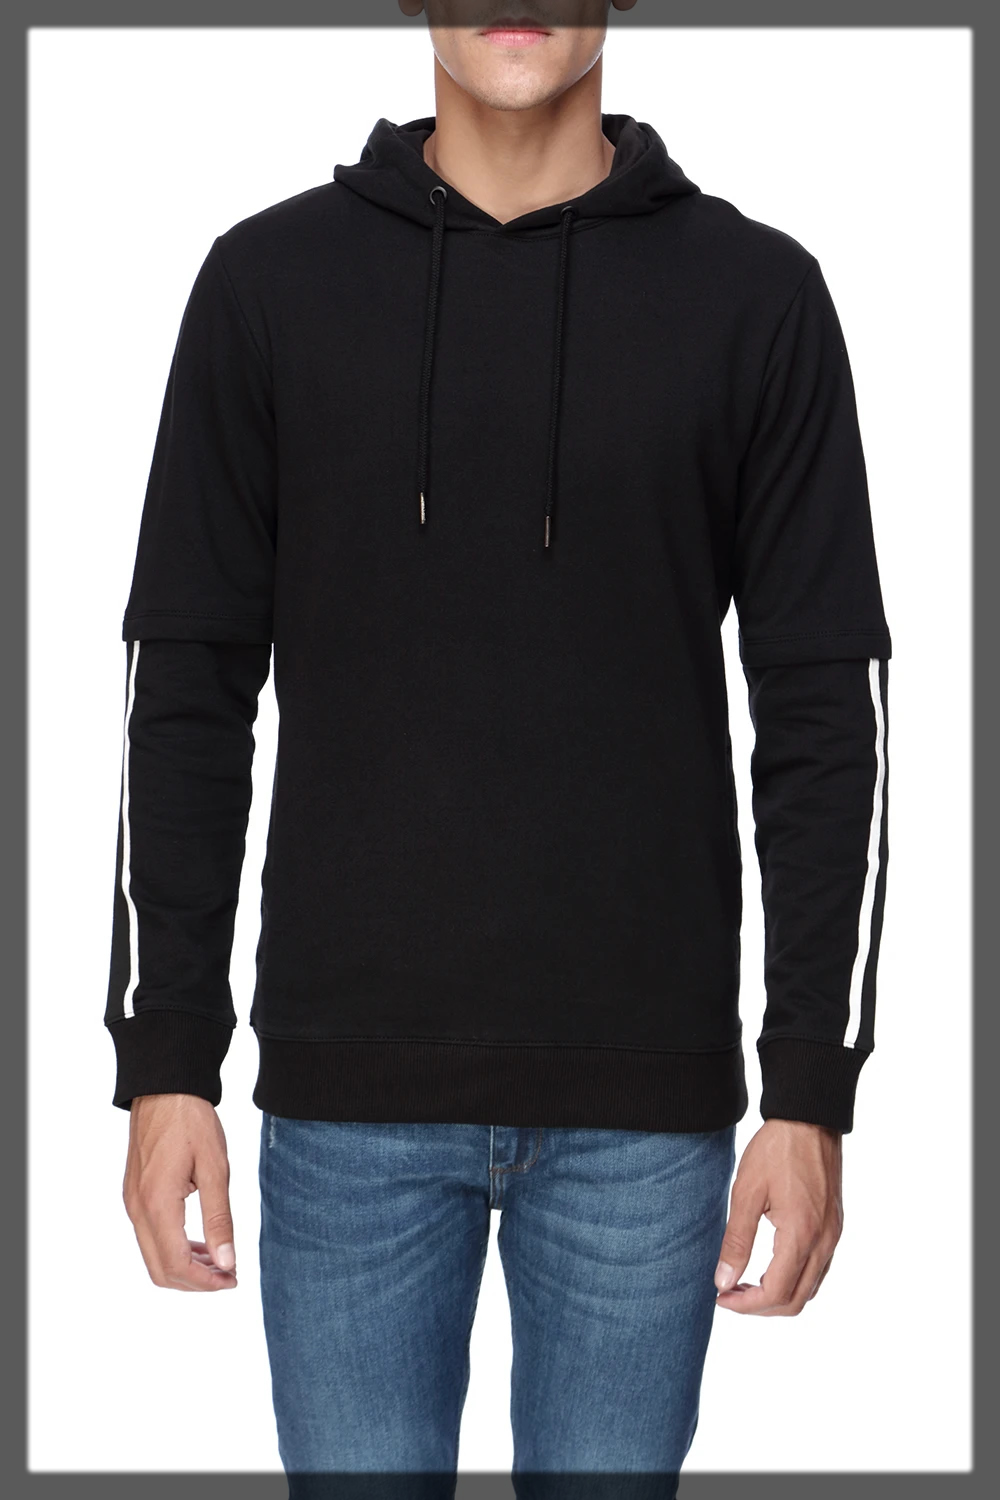 Winter Hoodies for men